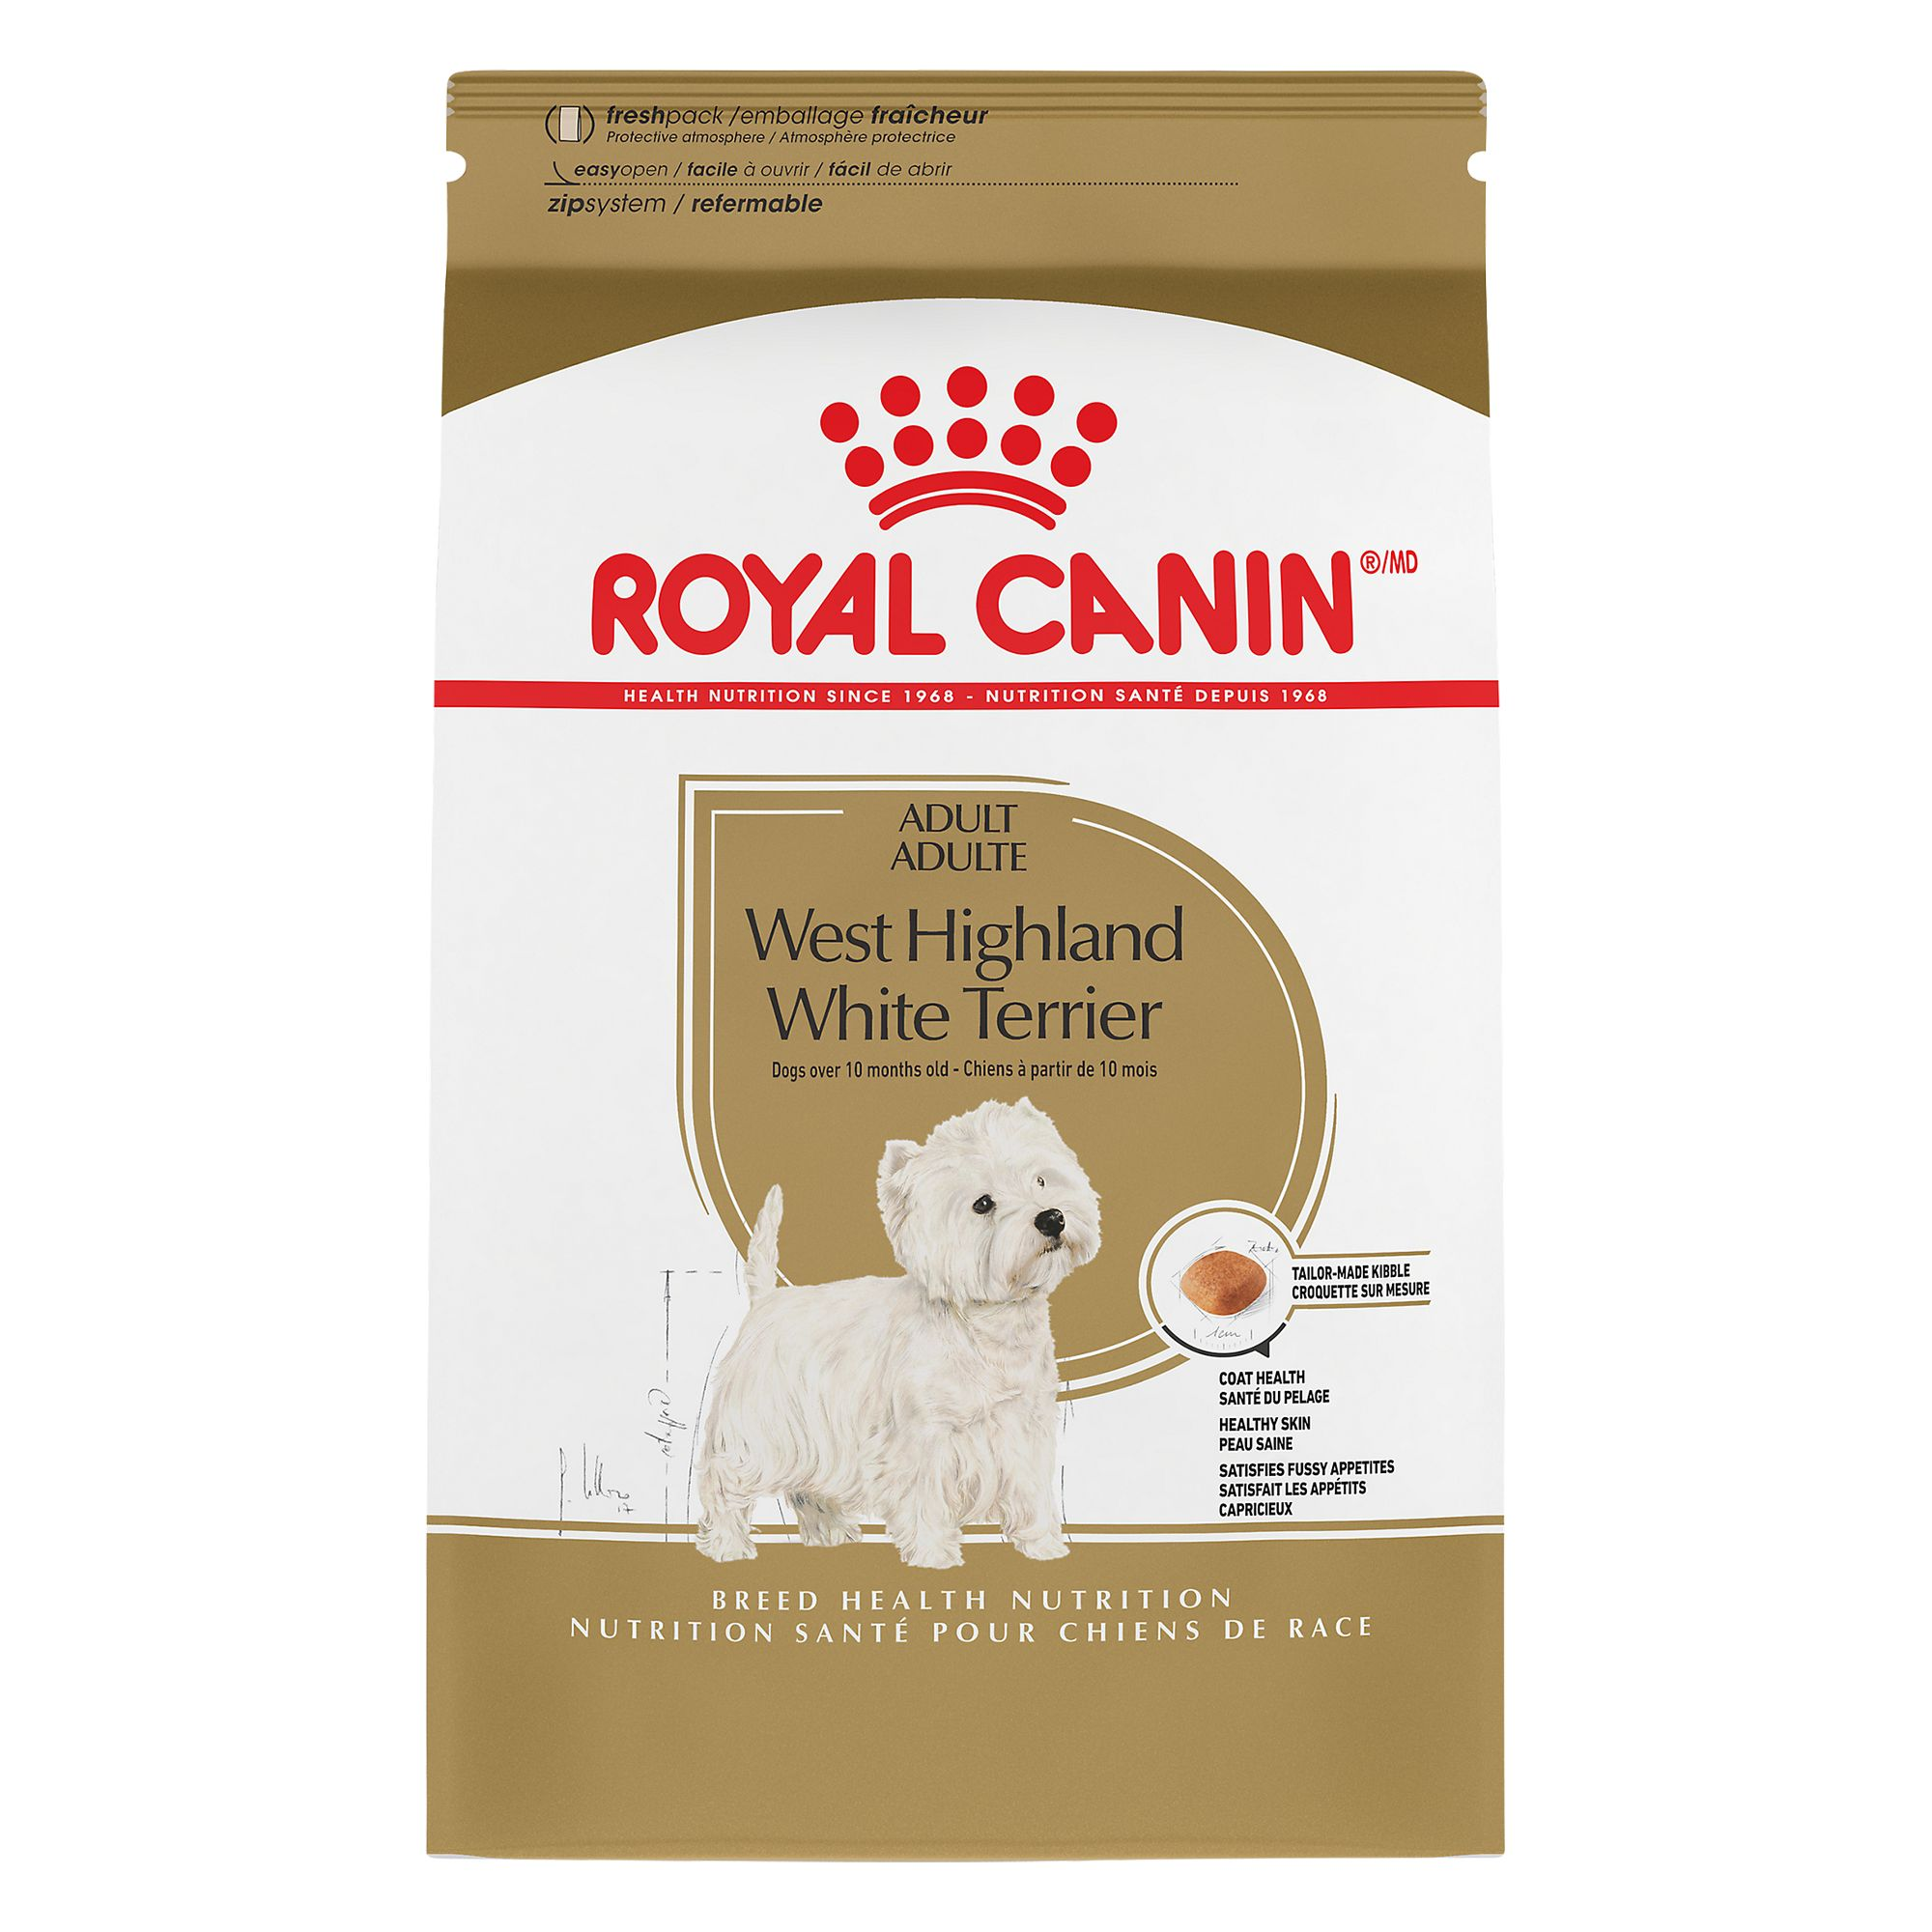 Royal Canin Breed Health Nutrition, West Highland White Terrier Adult Dog Food size: 2.5 Lb, Kibble, Brewer's Rice 5211542